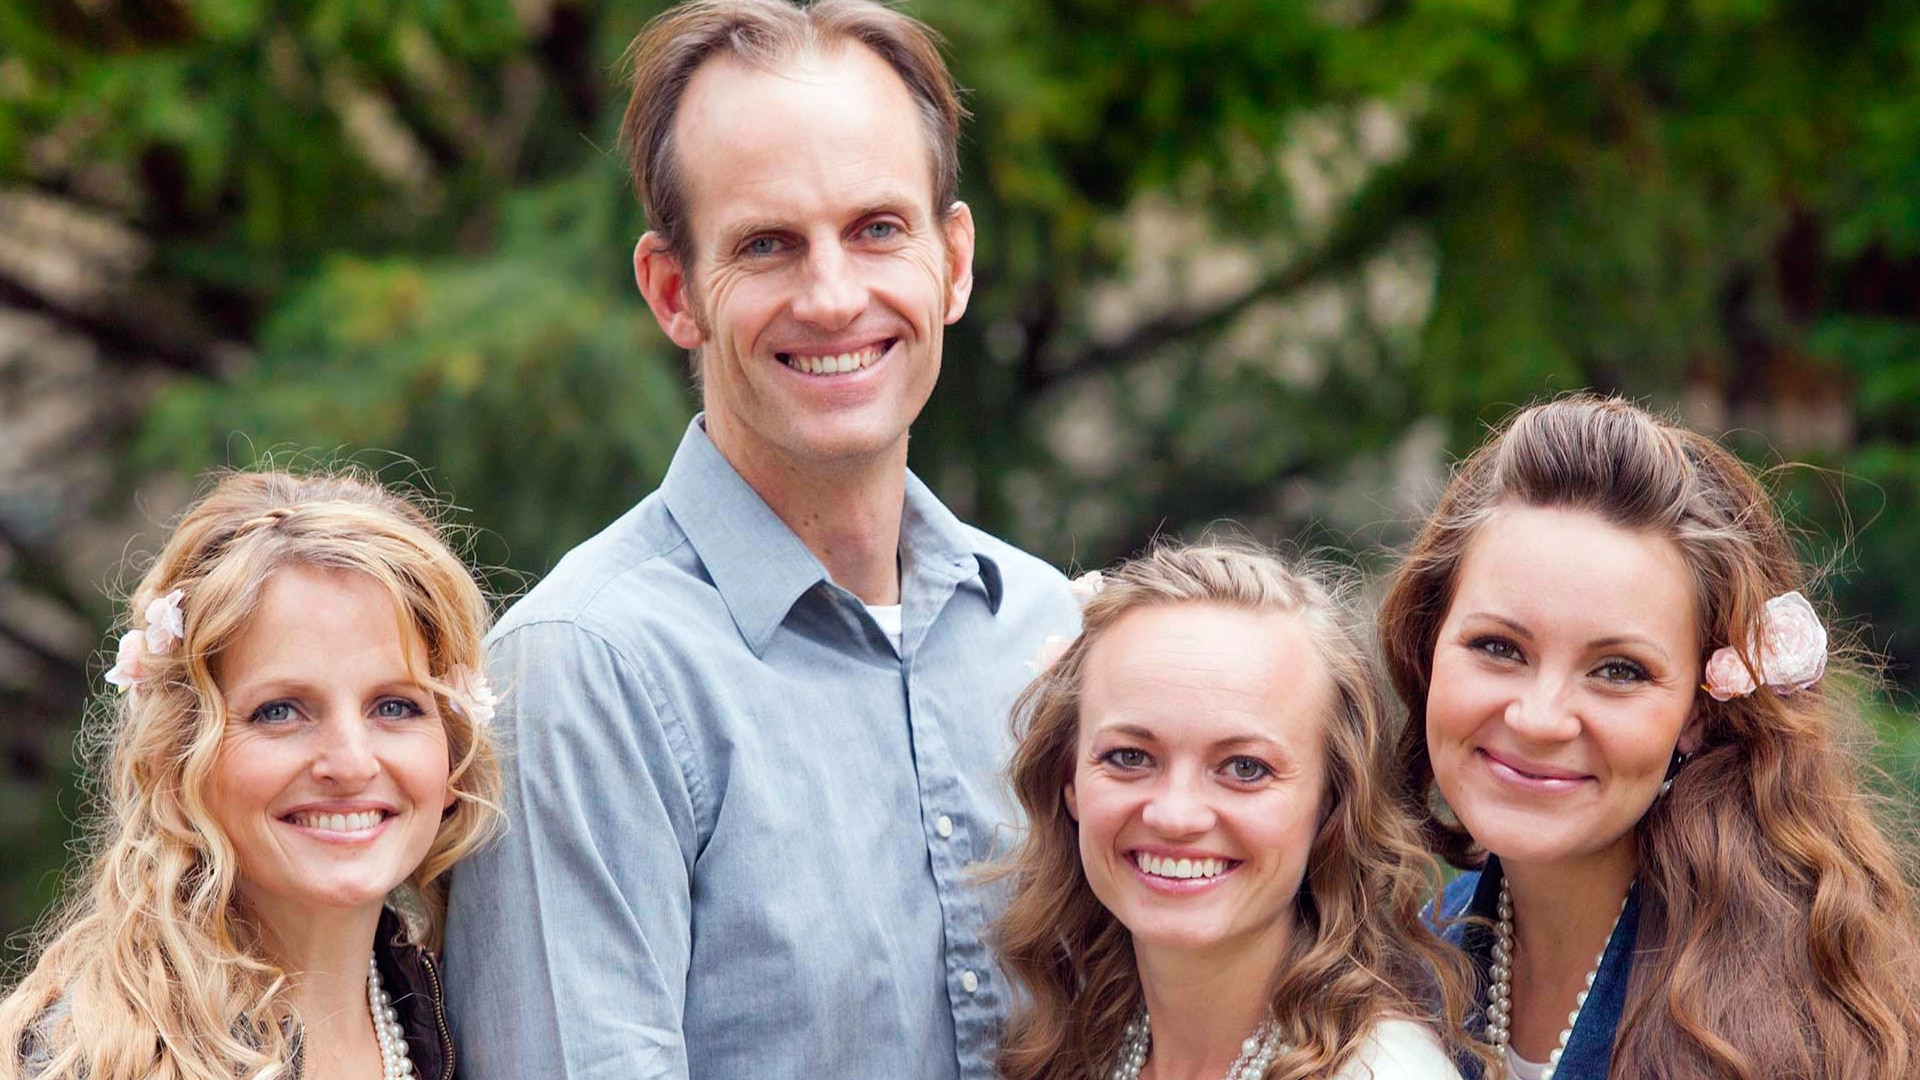 A Mormon man poses with his three wives